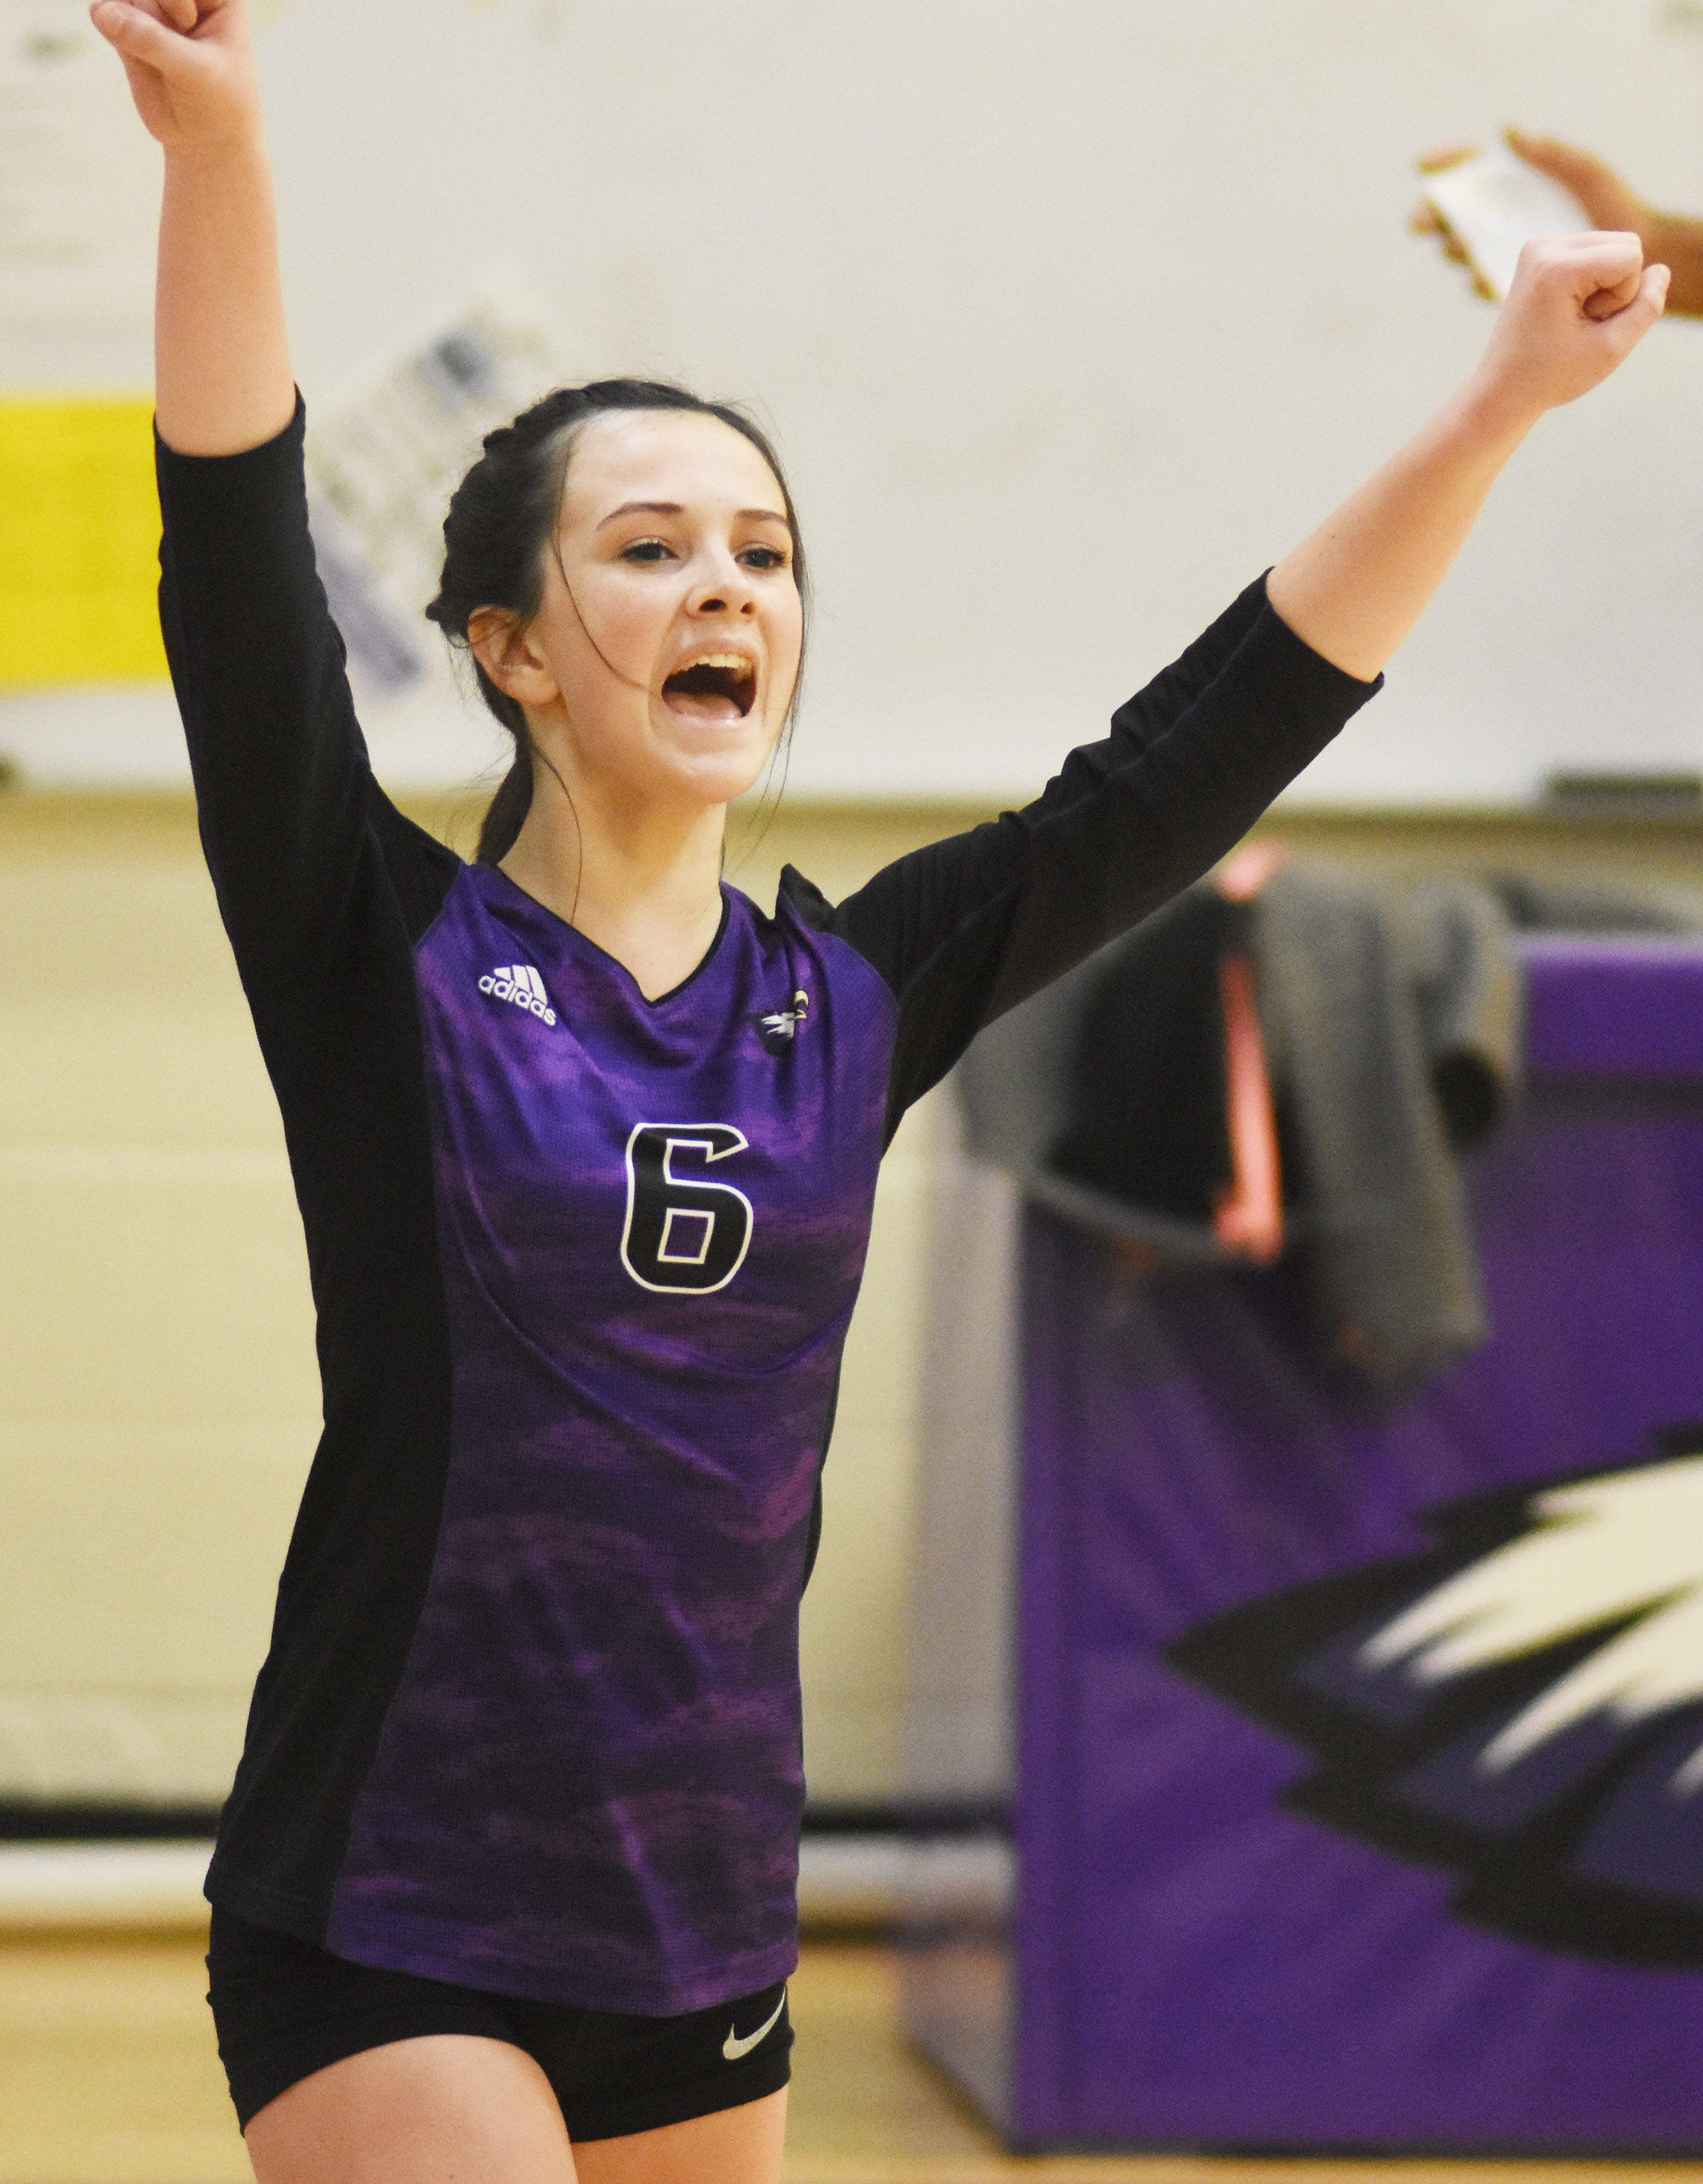 CMS eighth-grader Sarah Adkins cheers after a point.